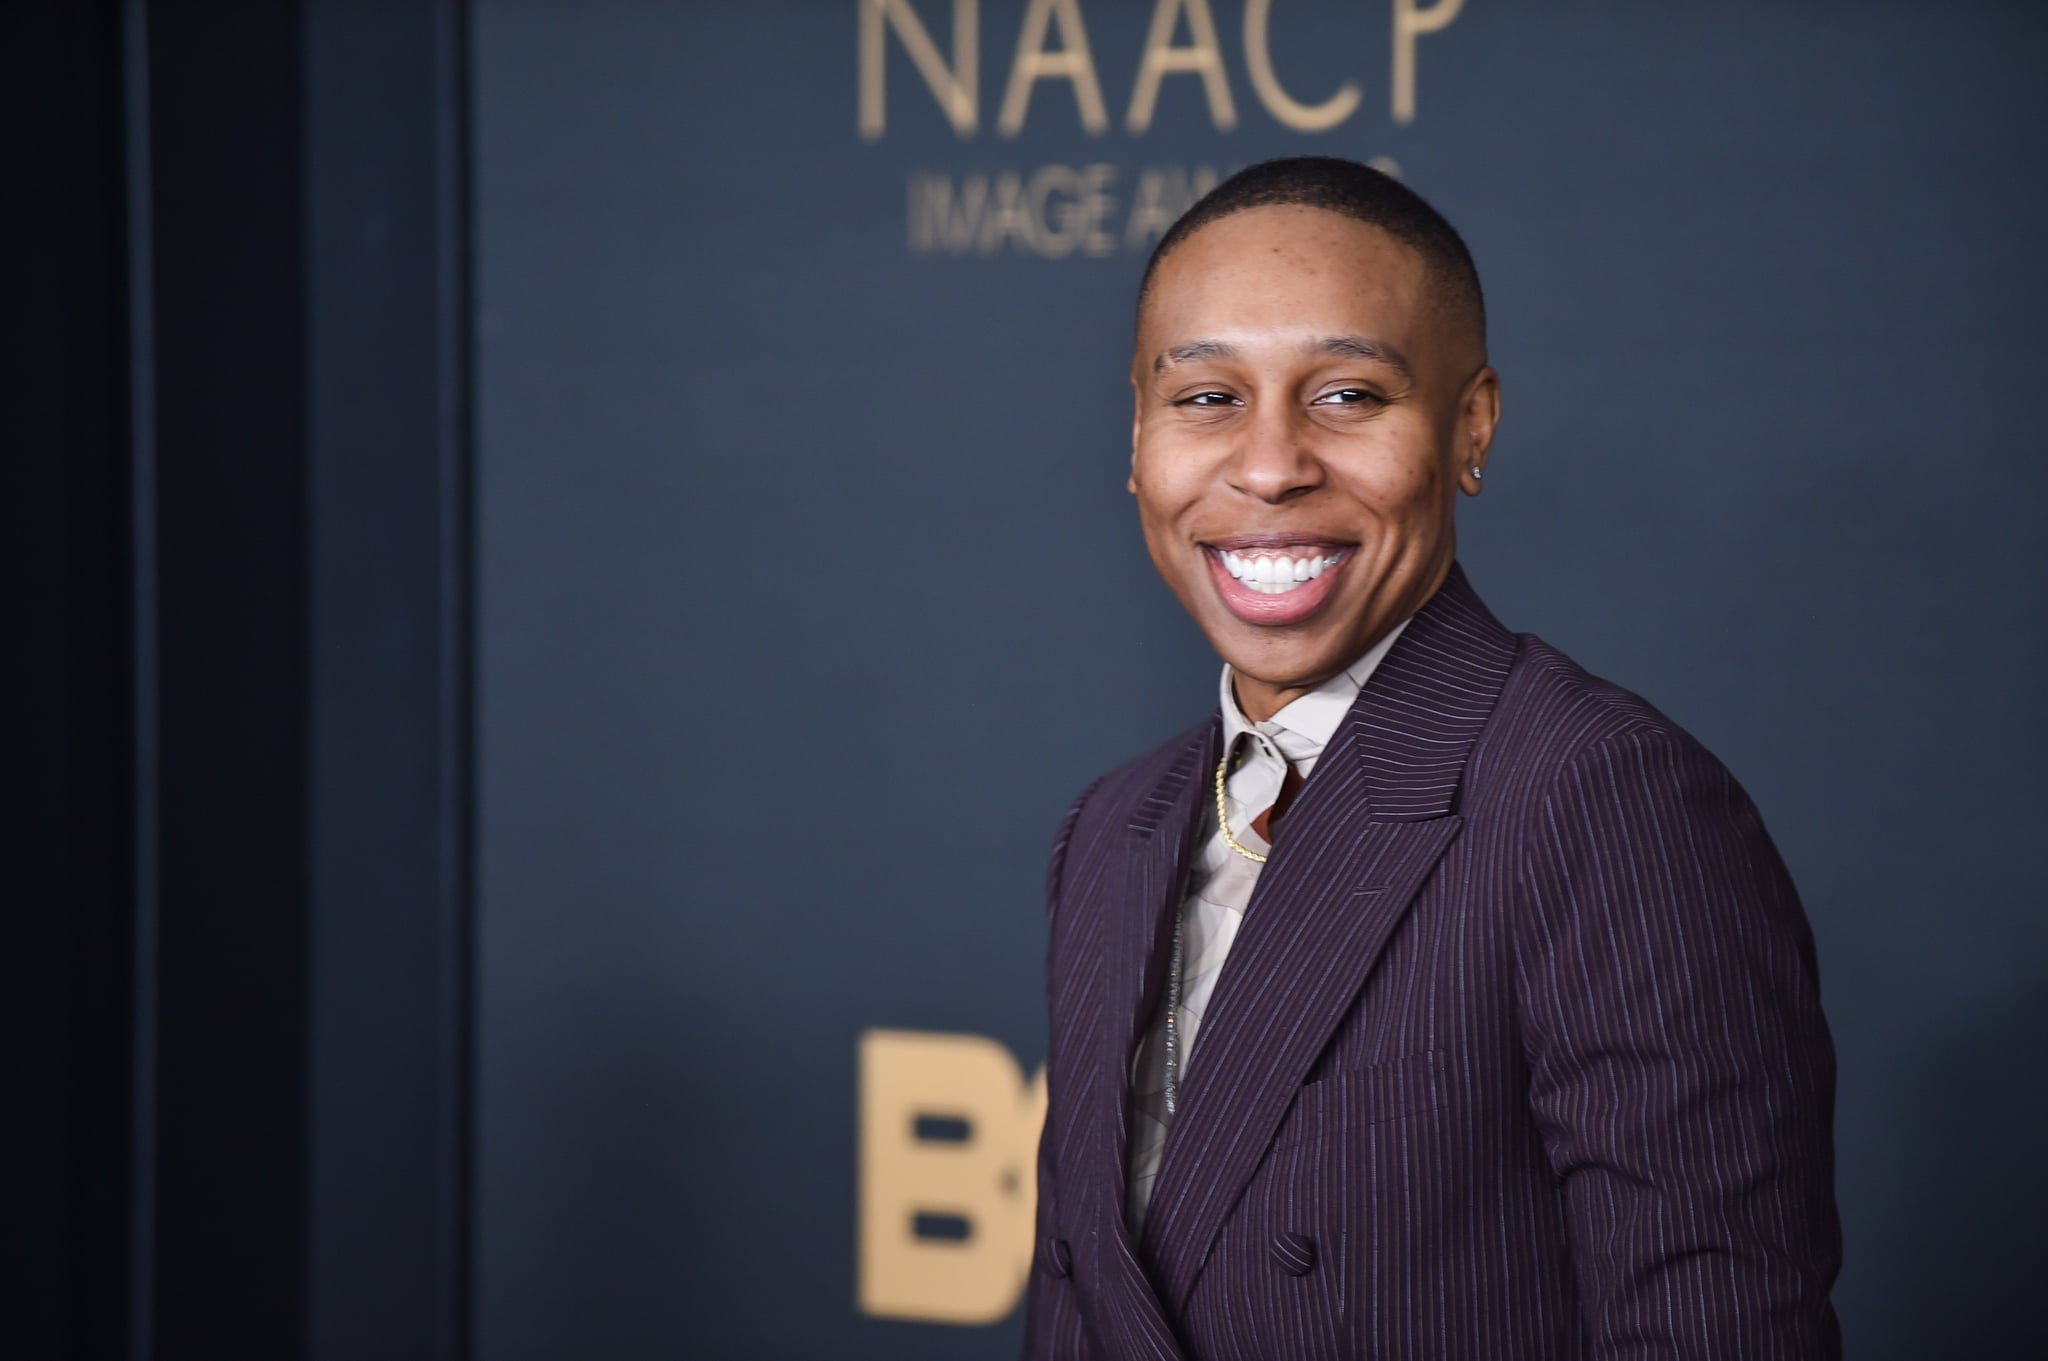 Lena Waithe attends the 51st NAACP Image Awards at the Pasadena Civic Auditorium on February 22, 2020 in Pasadena, California. (Photo by Aaron J. Thornton/FilmMagic)